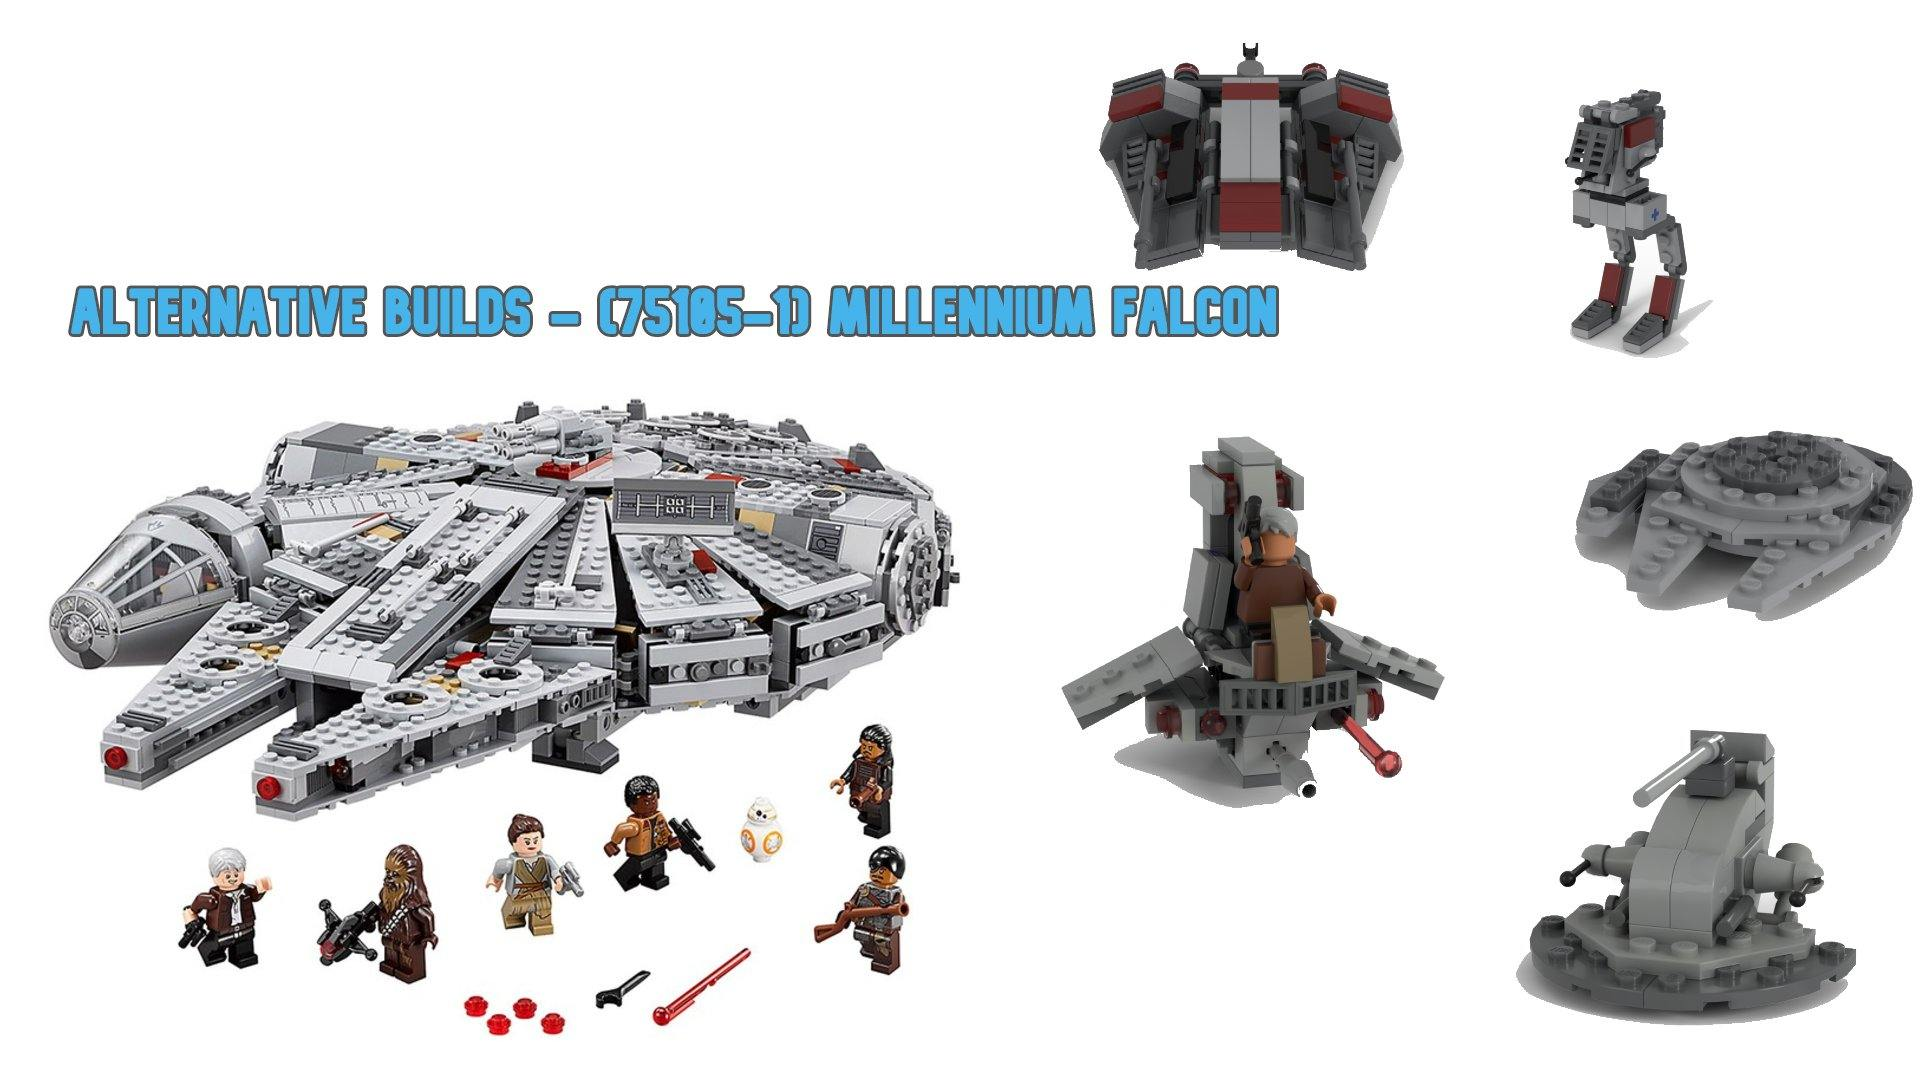 Alternative Builds - (75105-1) Millennium Falcon